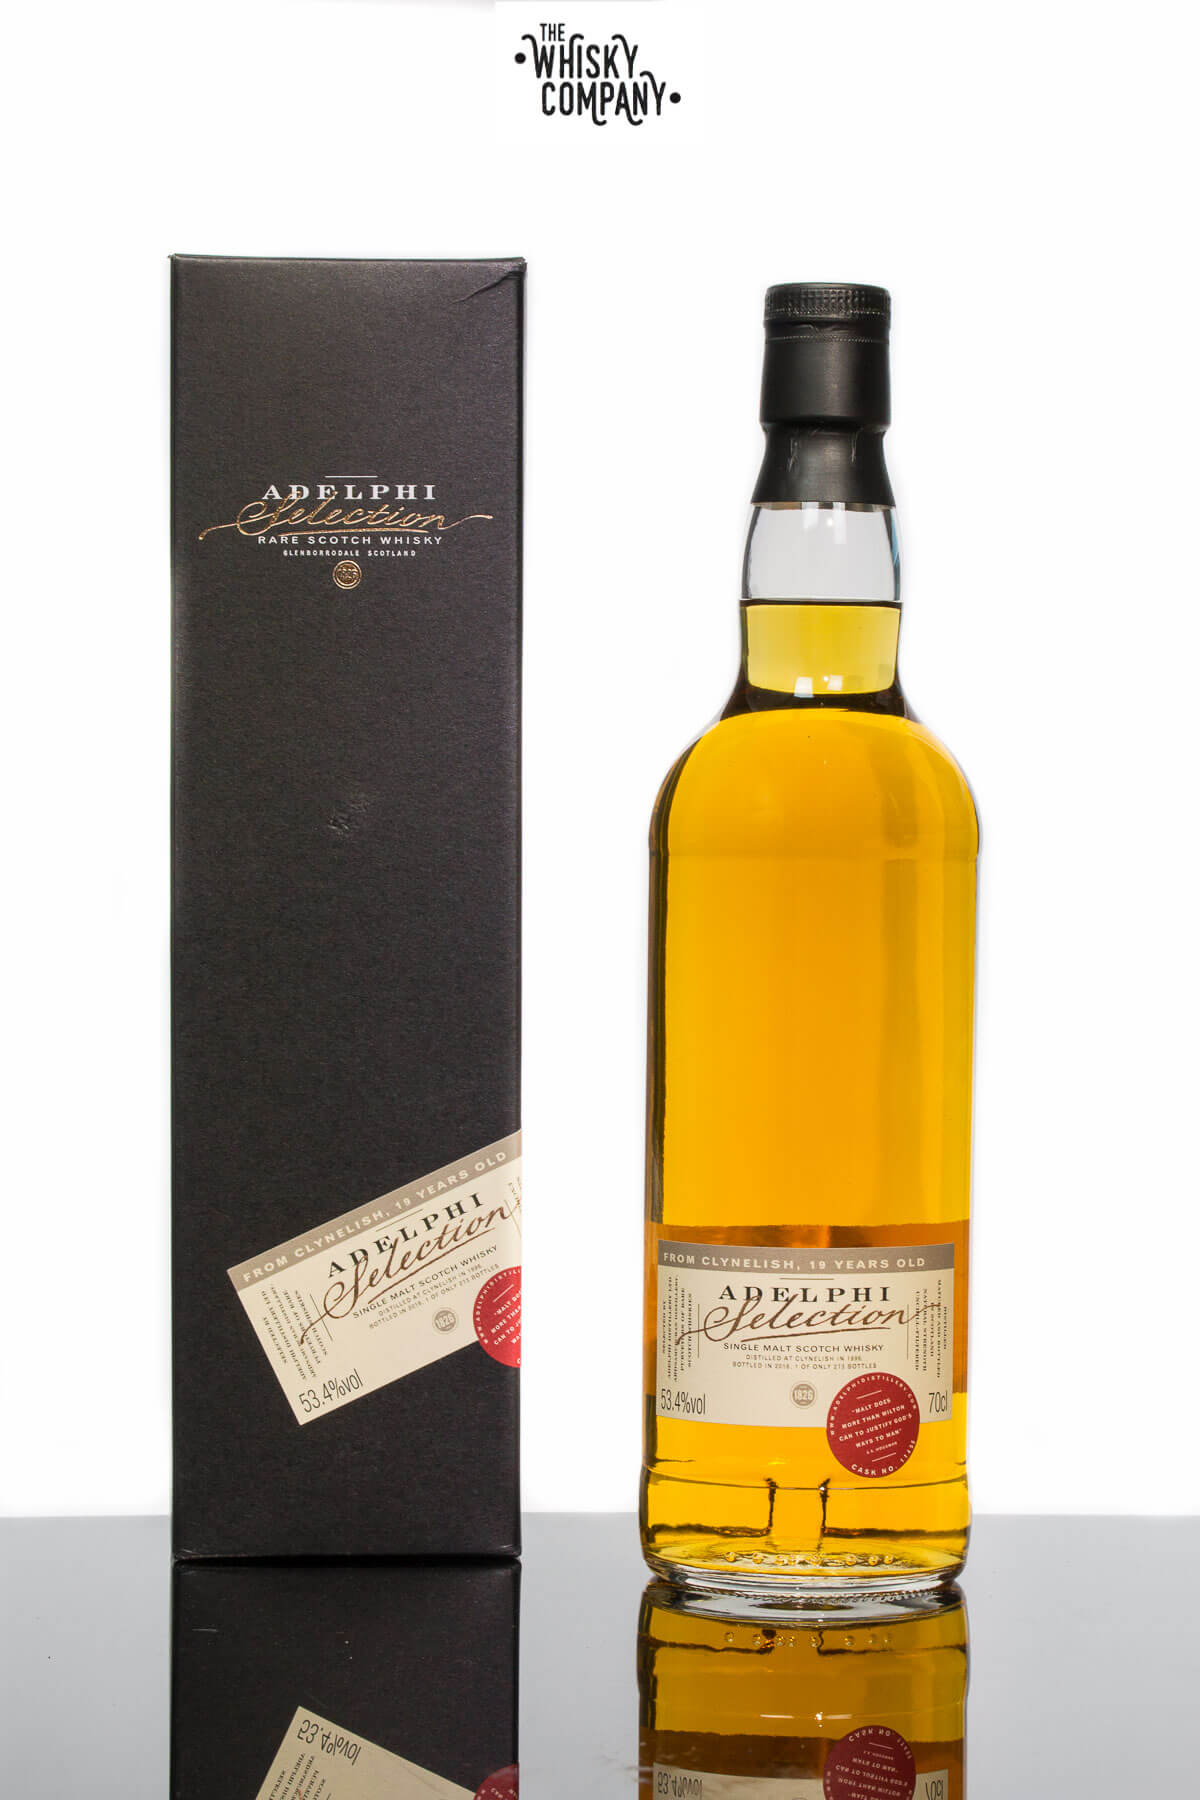 Adelphi 1996 Clynelish 19 Years Old Highland Single Malt Scotch Whisky